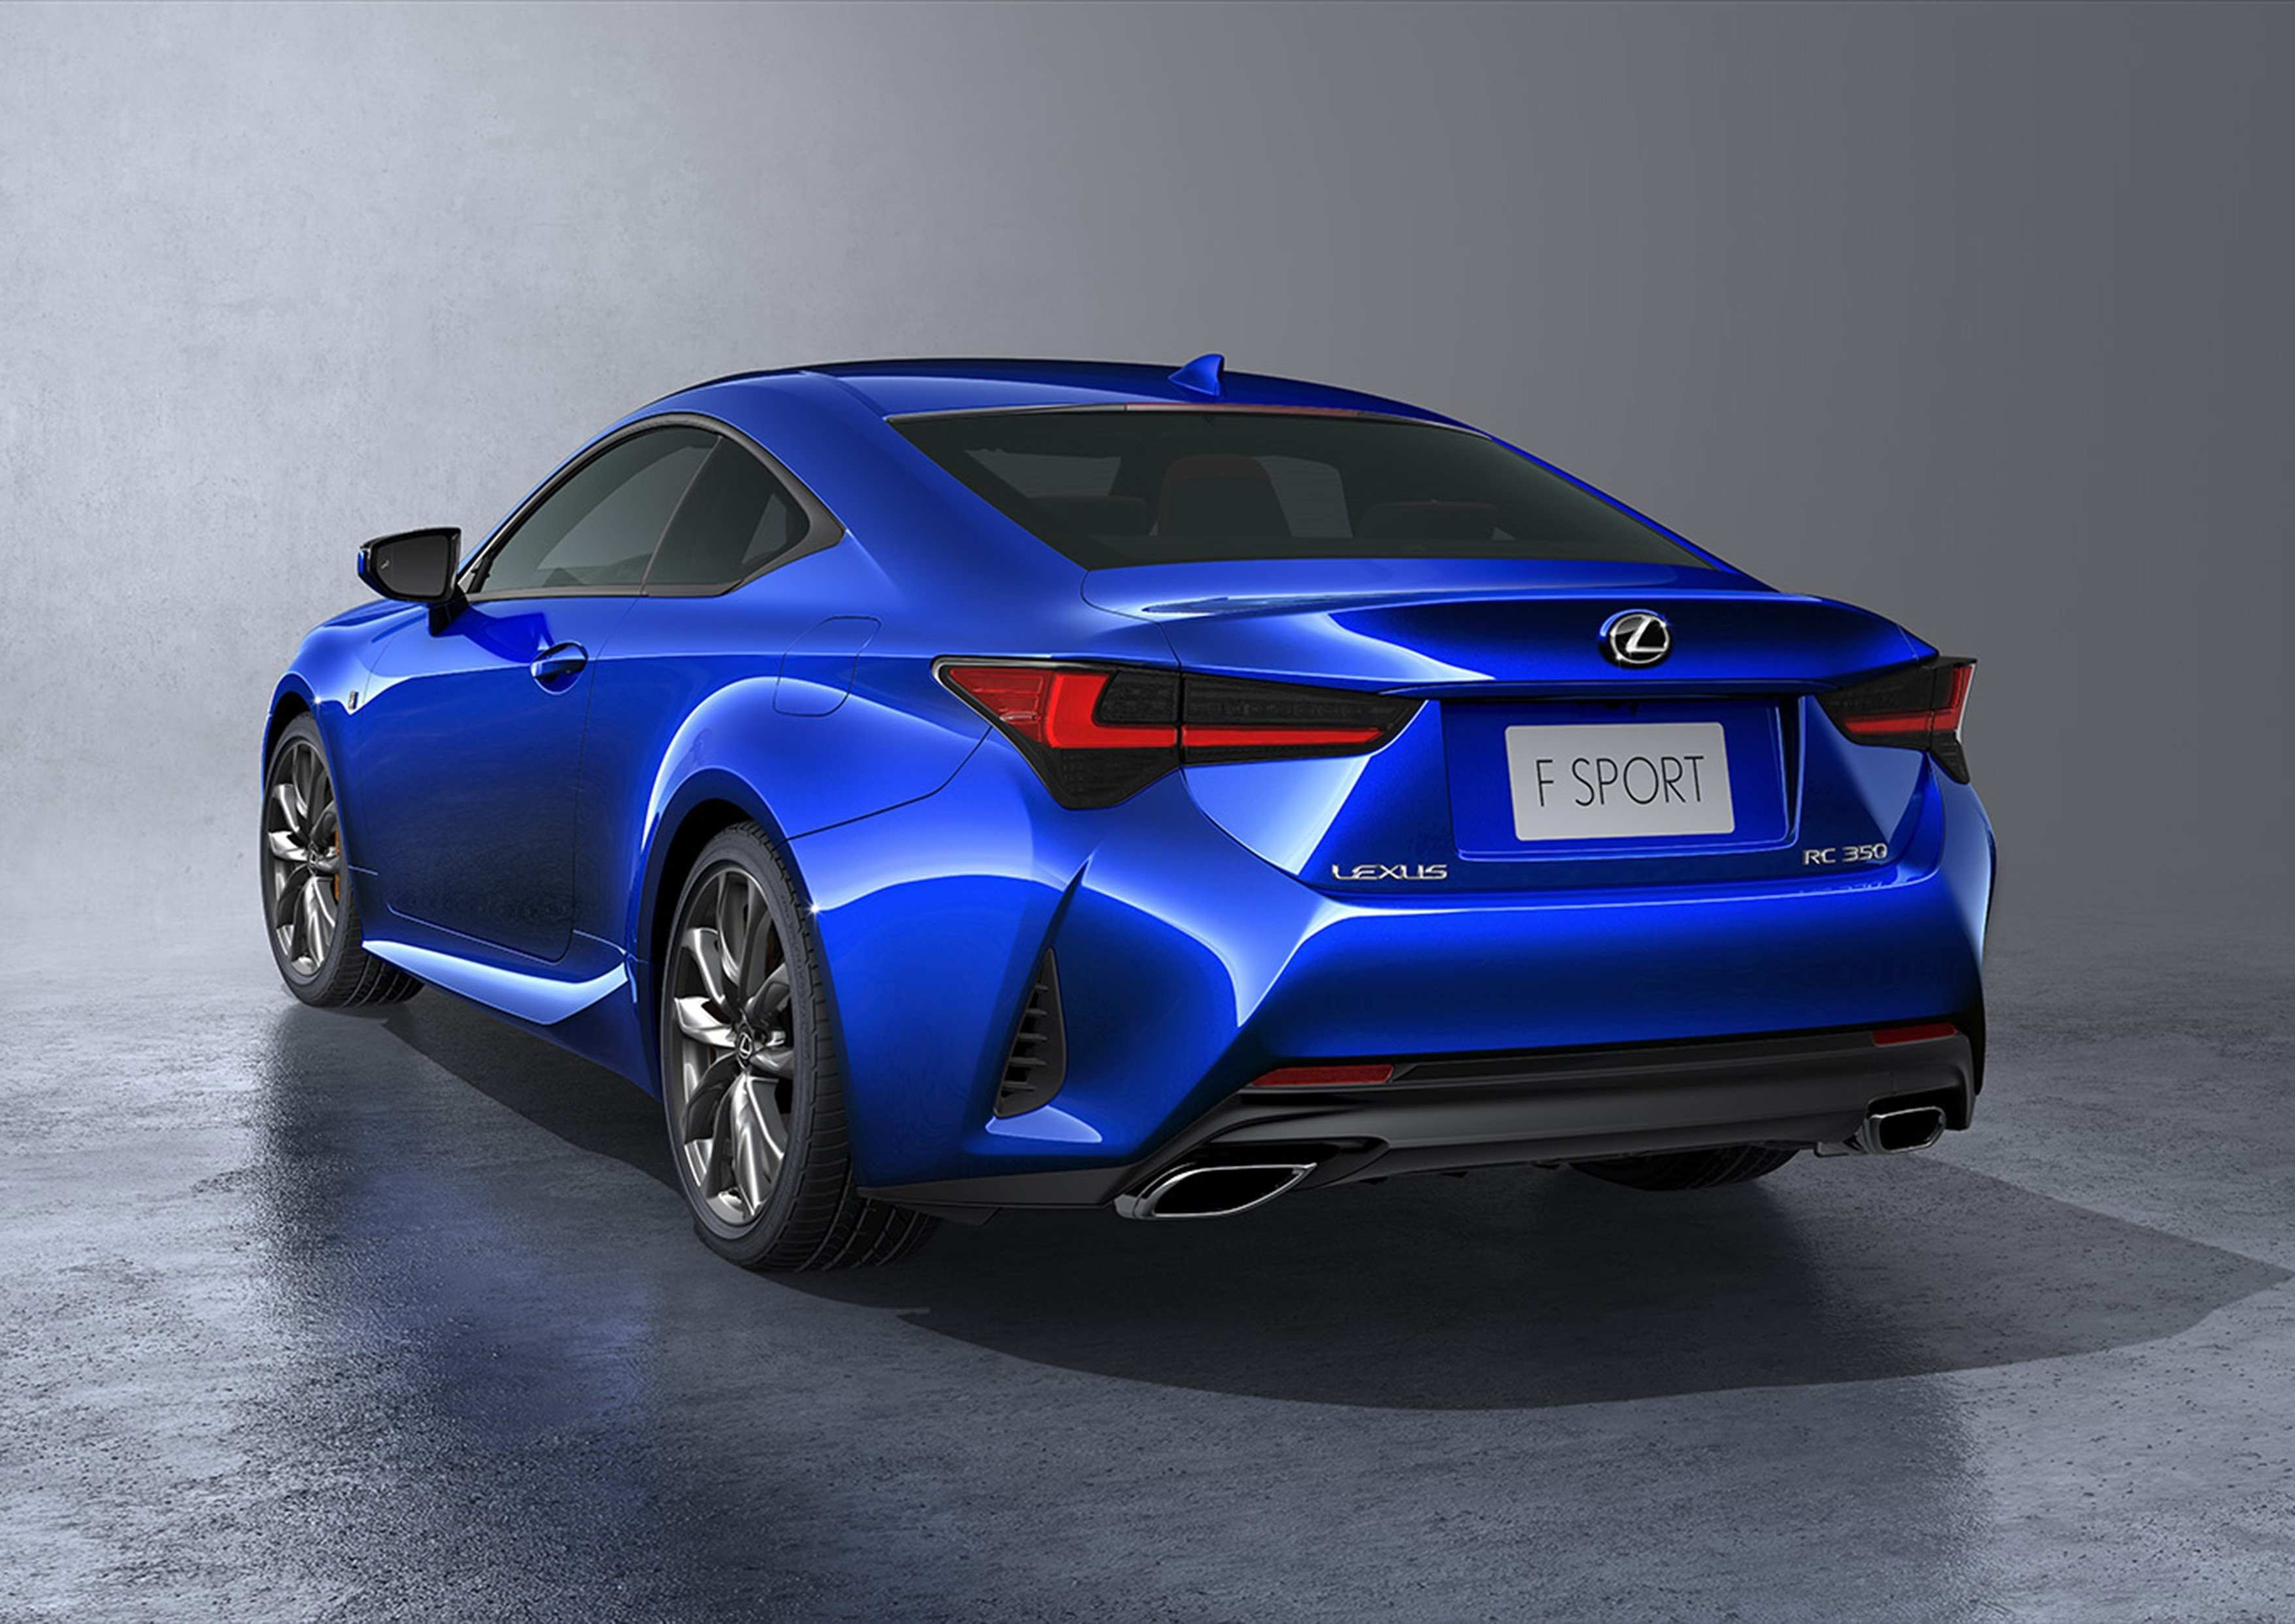 72 All New Lexus Gs F 2020 Exterior And Interior